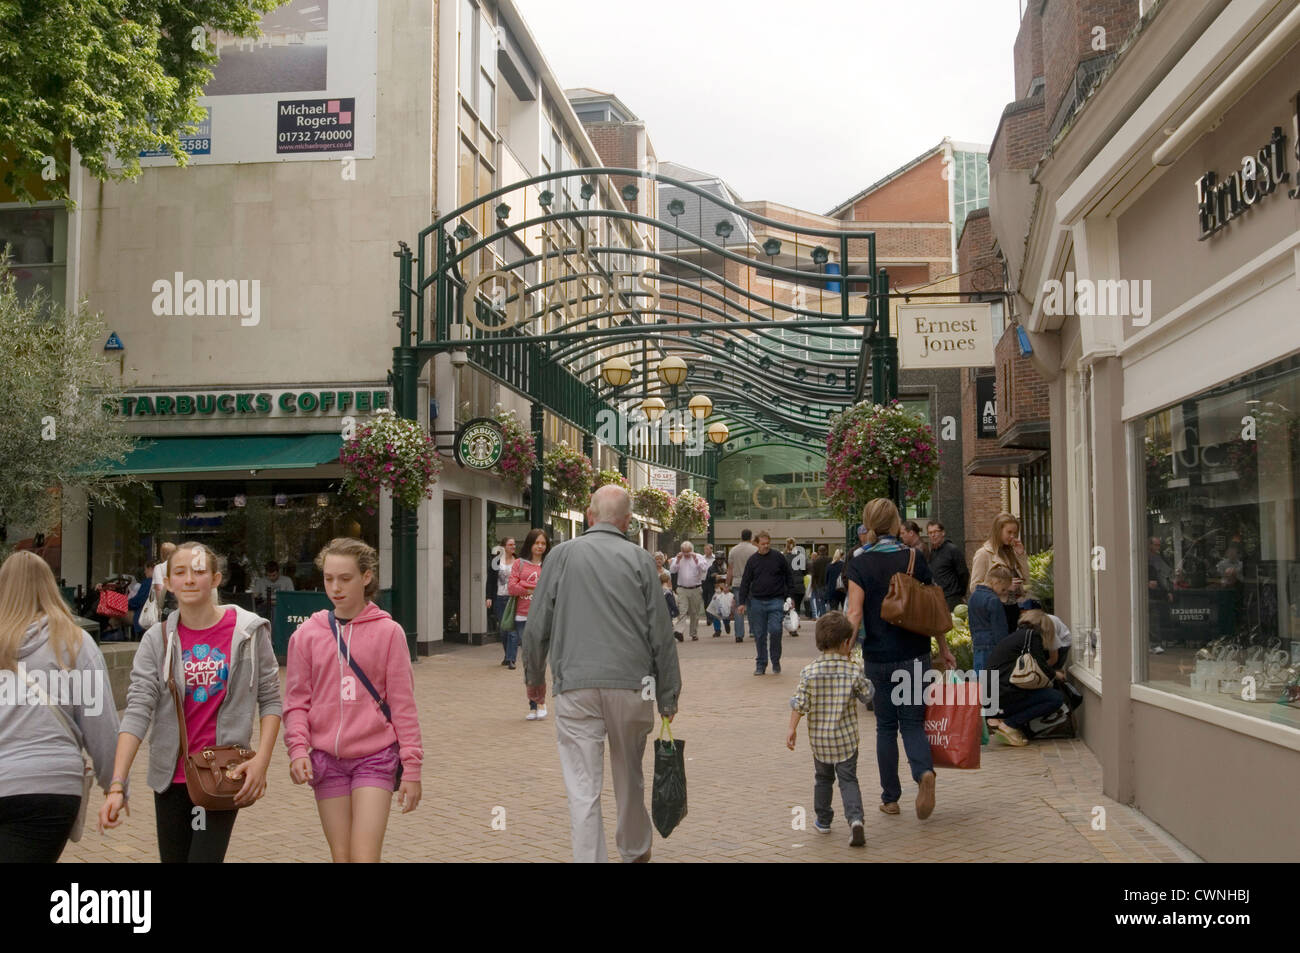 bromley high street highstreet uk retail price index sale sales economy shop shopper shoppers shops shopping - Stock Image